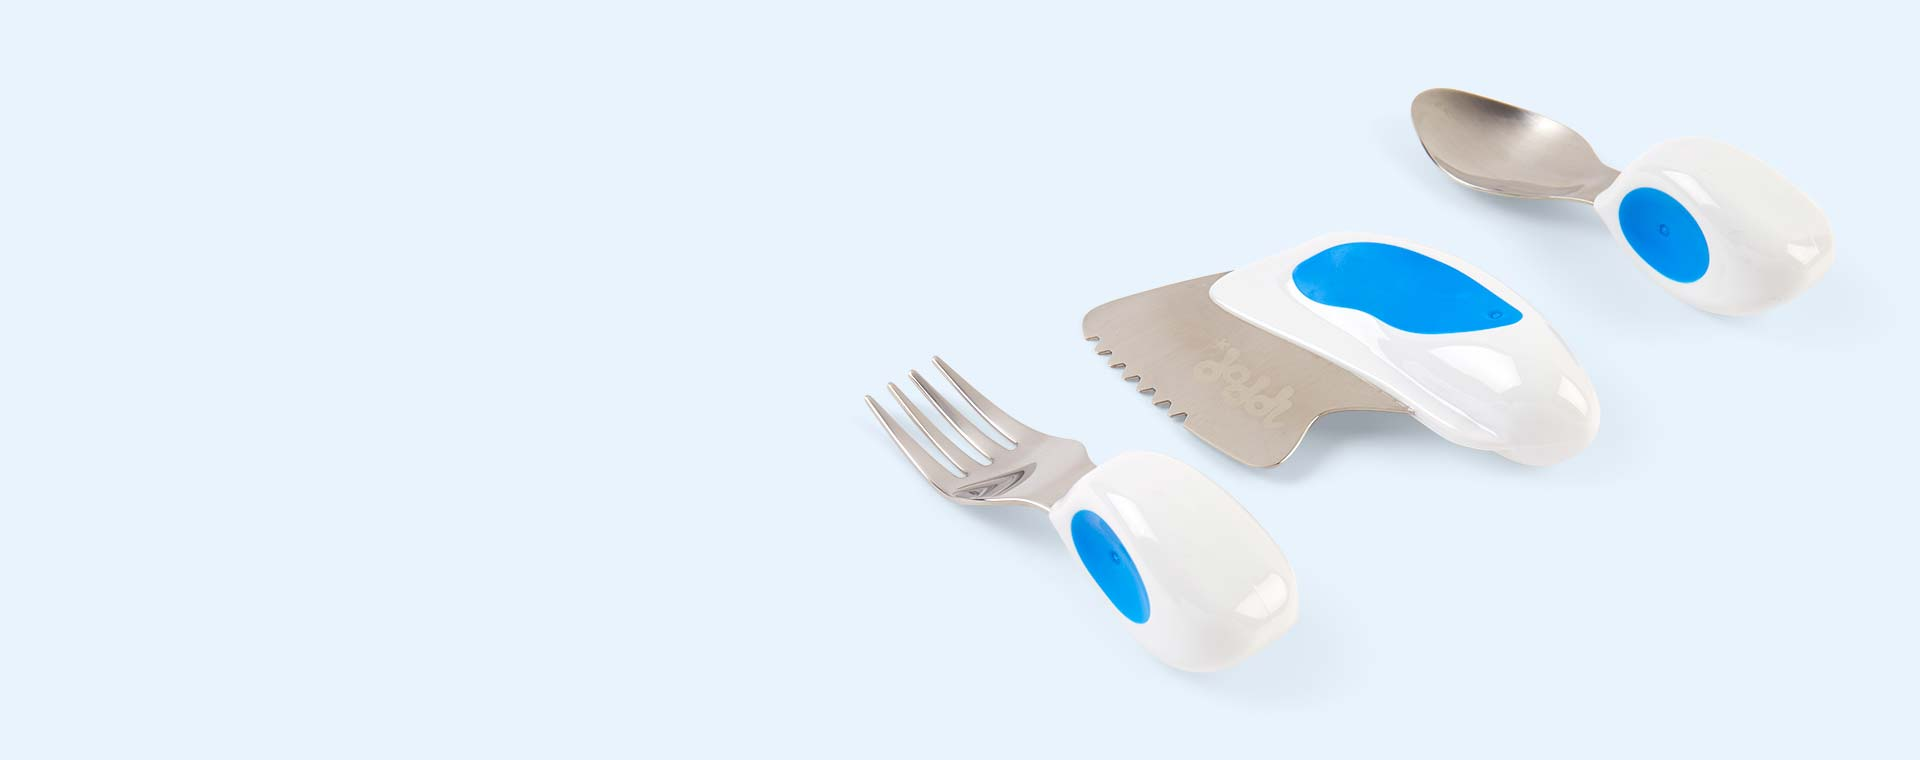 Blue doddl 3 Piece Cutlery Set